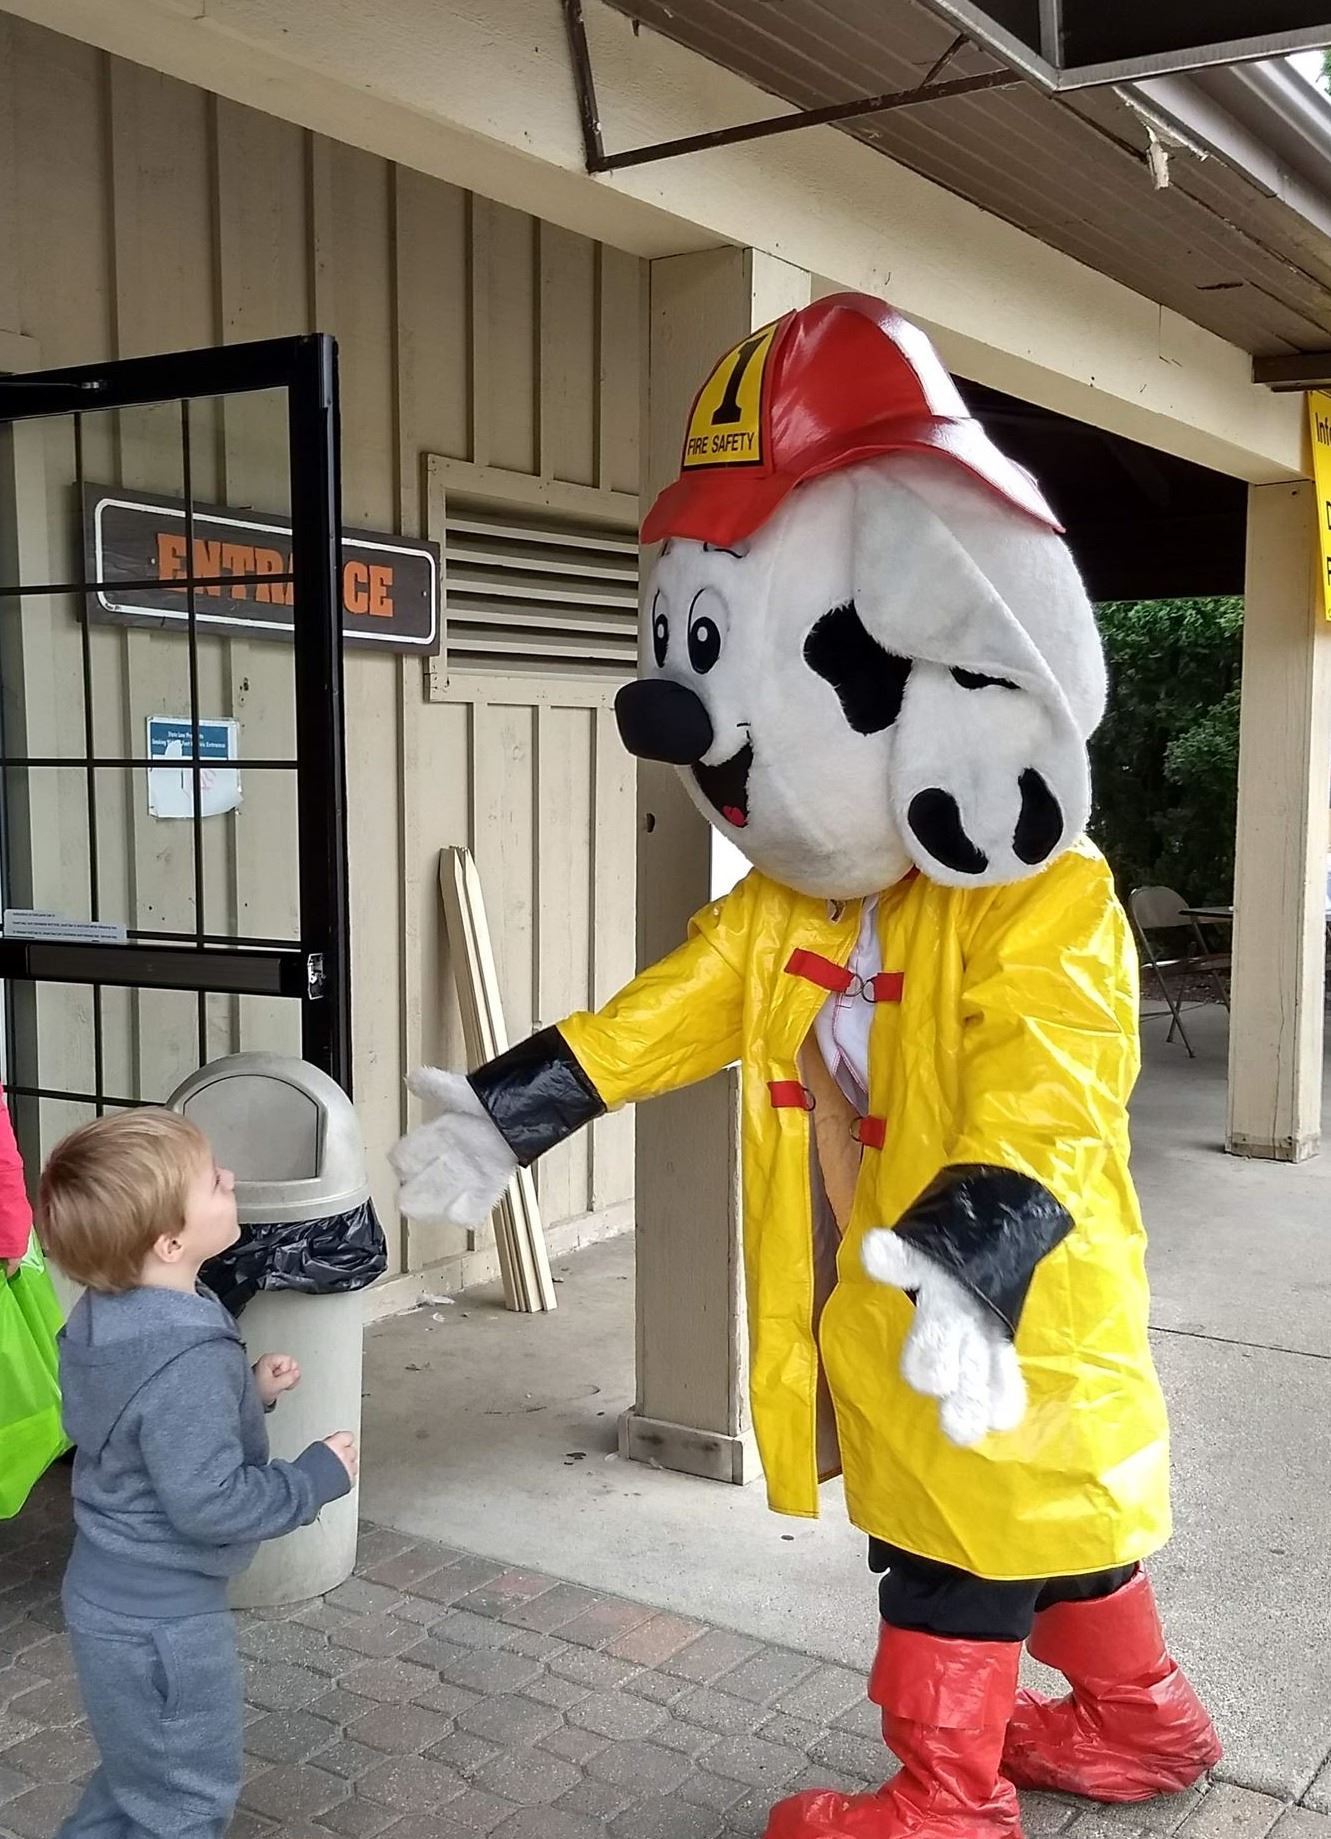 Sparky the Fire Dog interacting with children